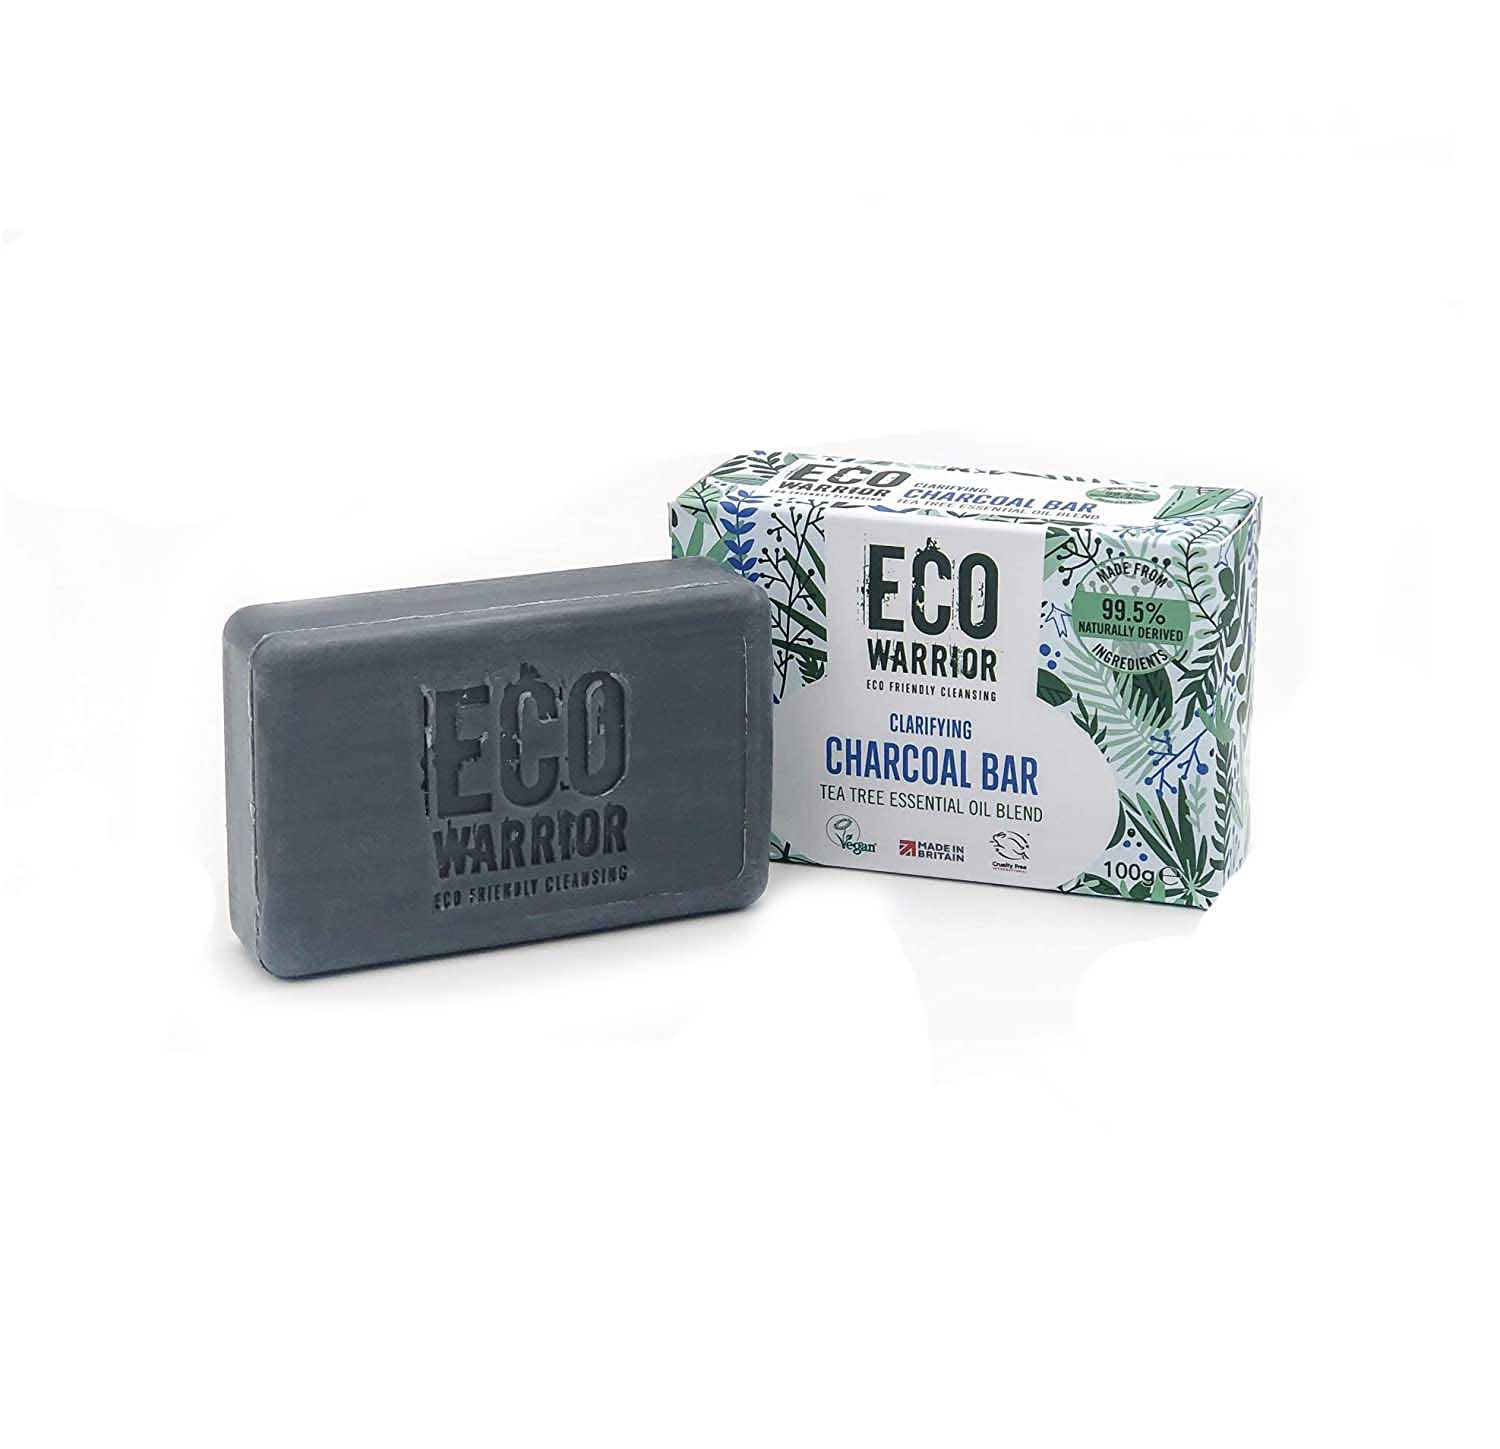 Eco Warrior Charcoal Bar